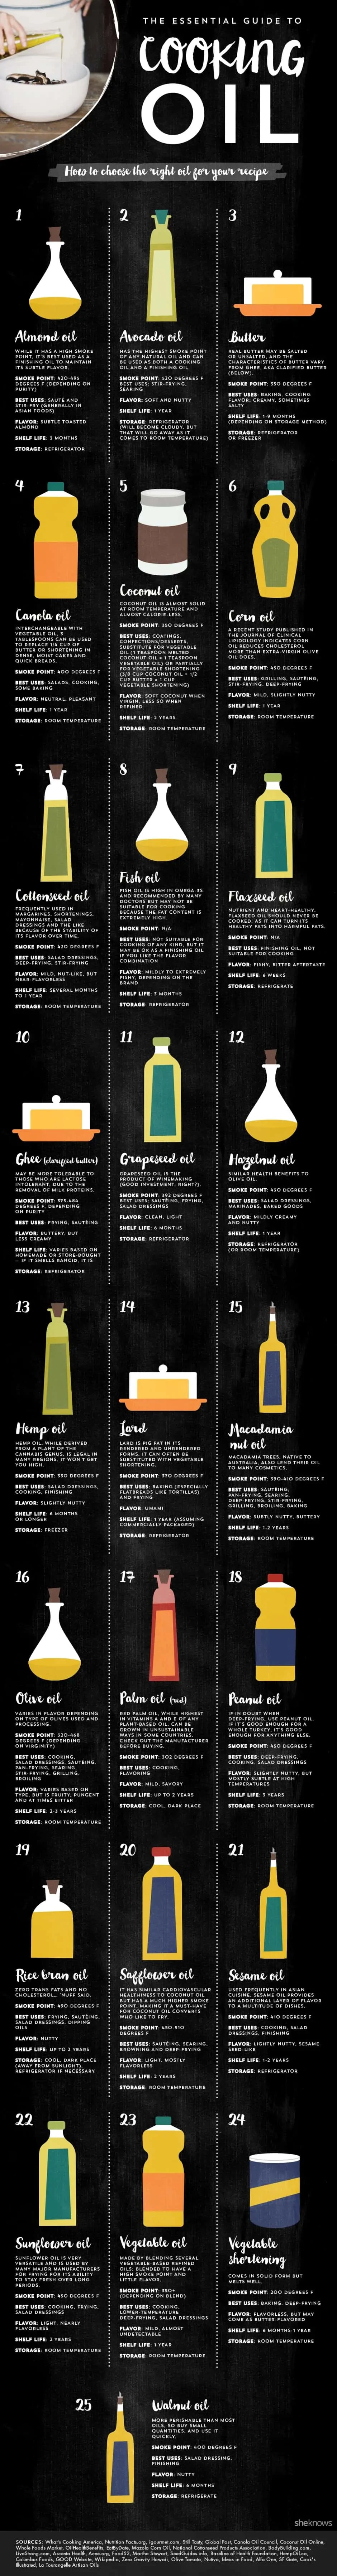 The Ultimate Guide to Cooking Oil